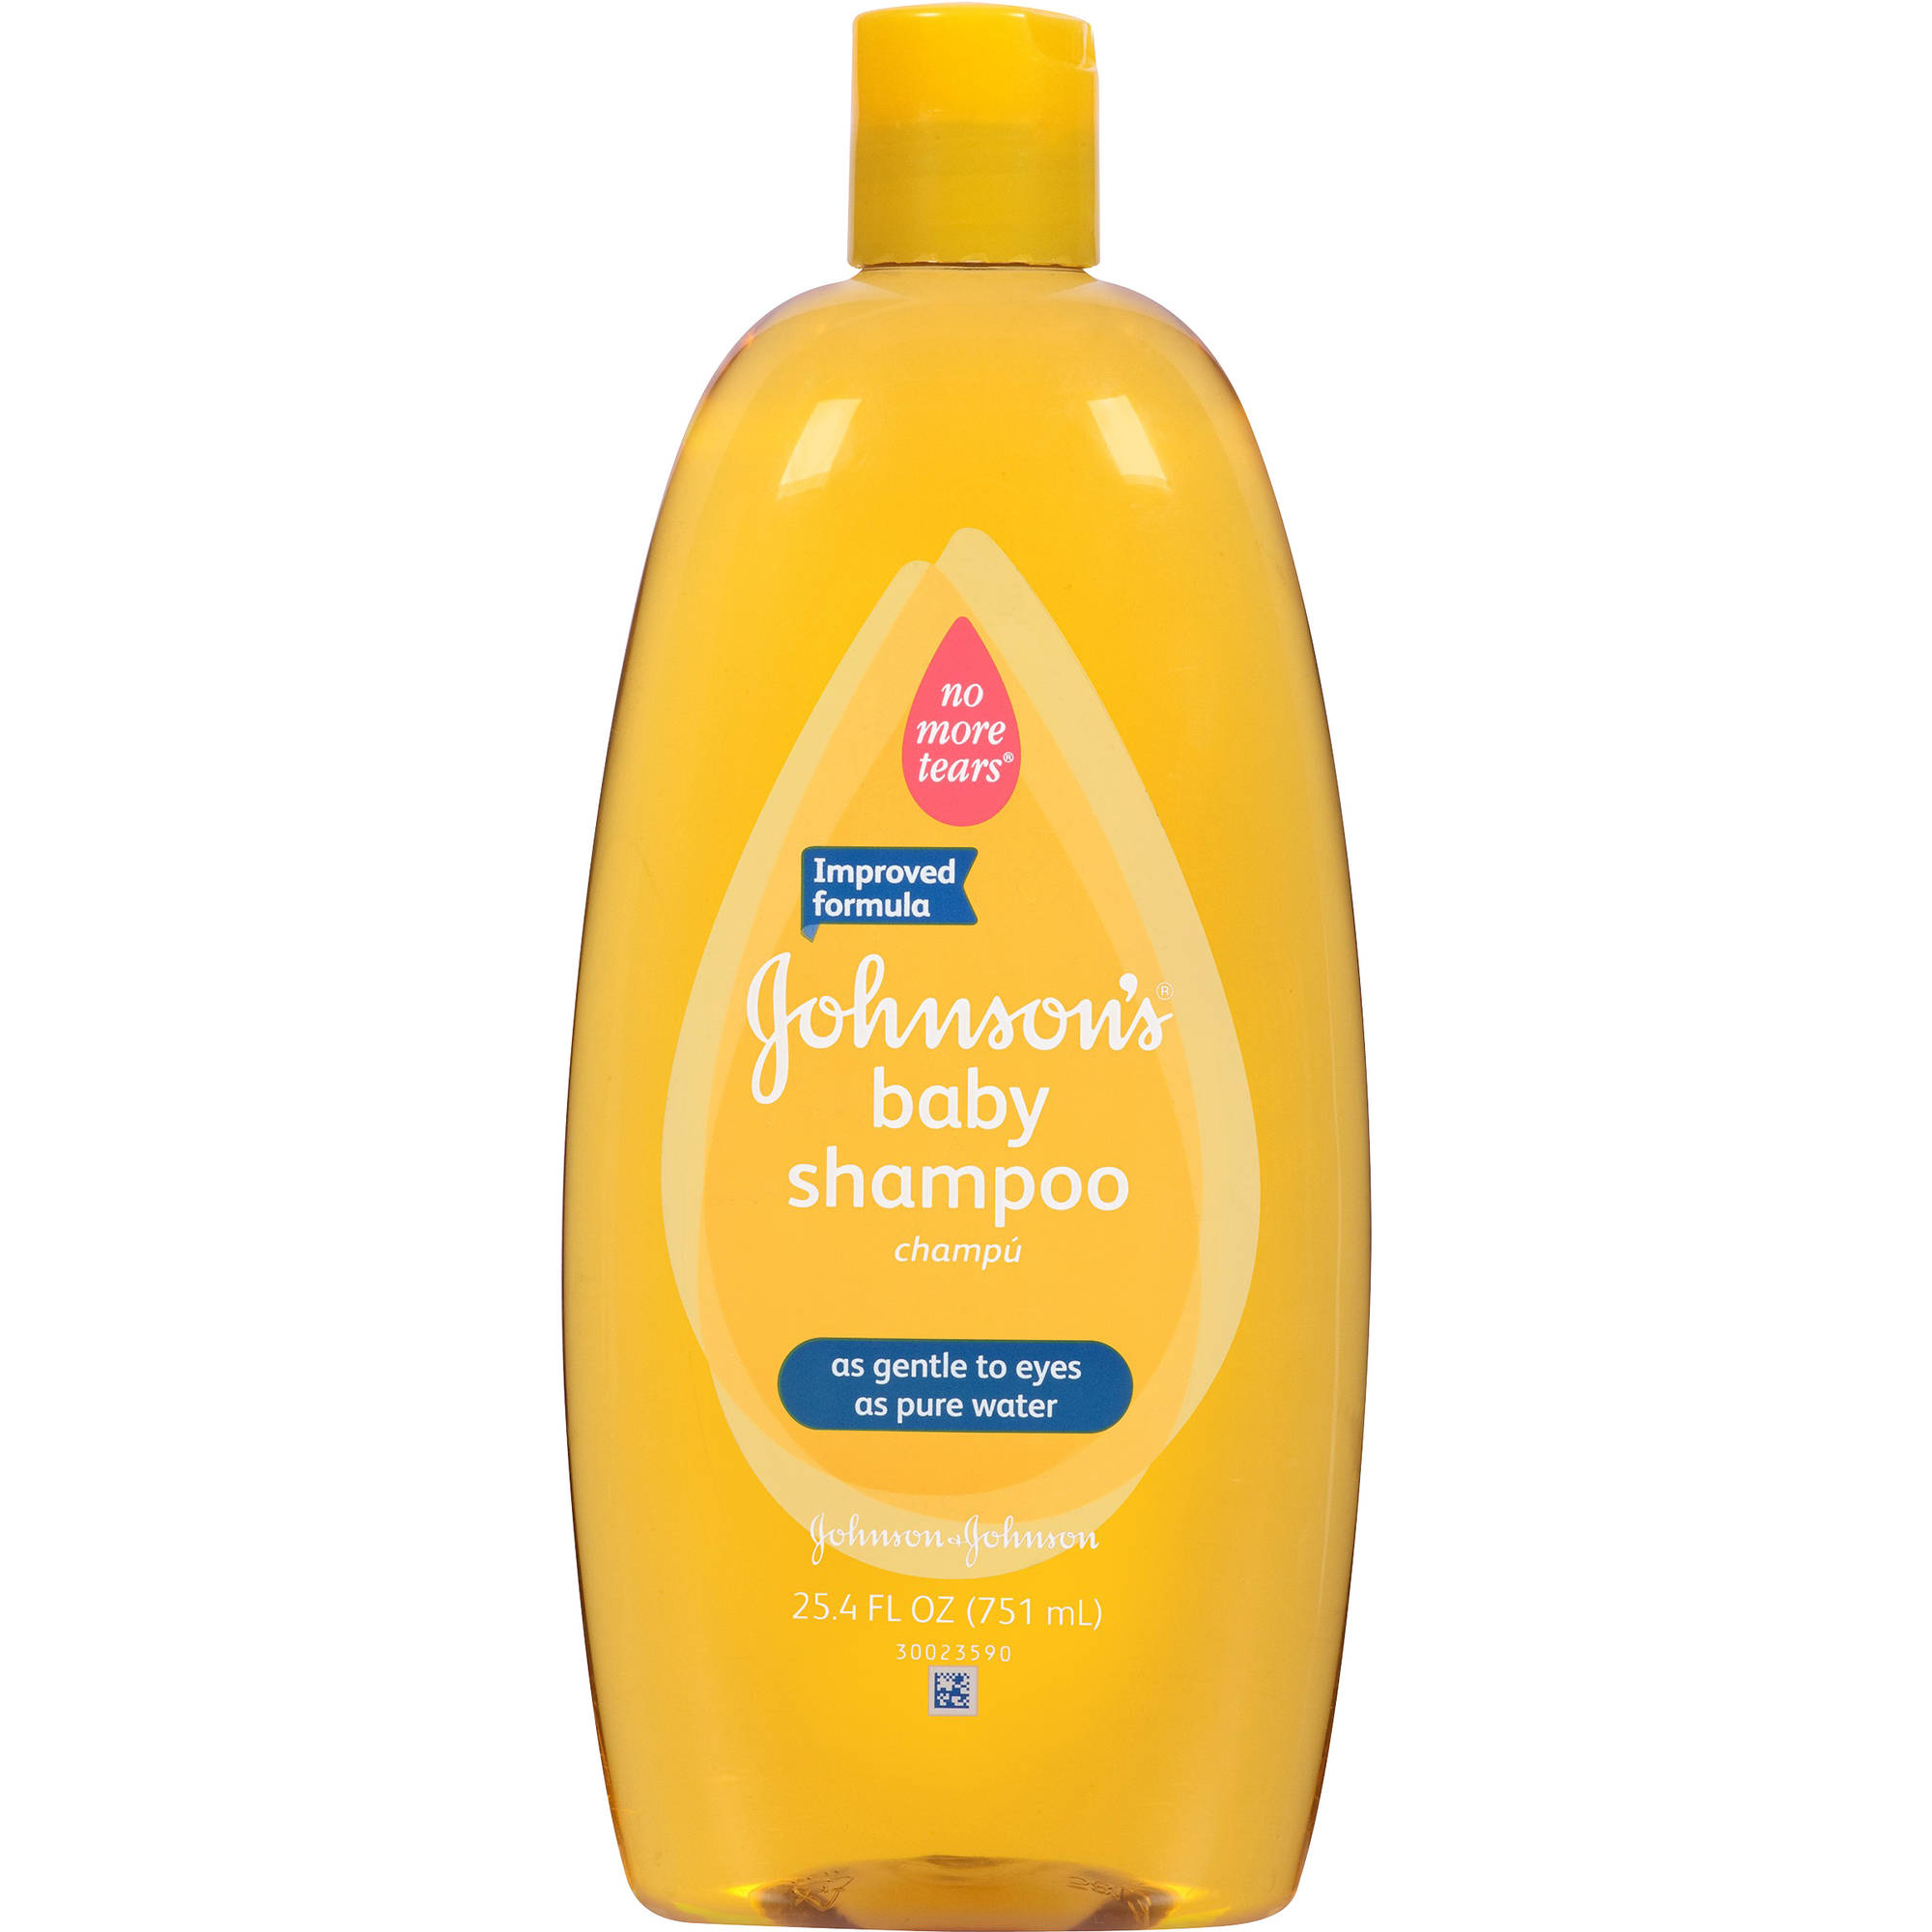 Johnson's Baby Shampoo, 25.4 oz